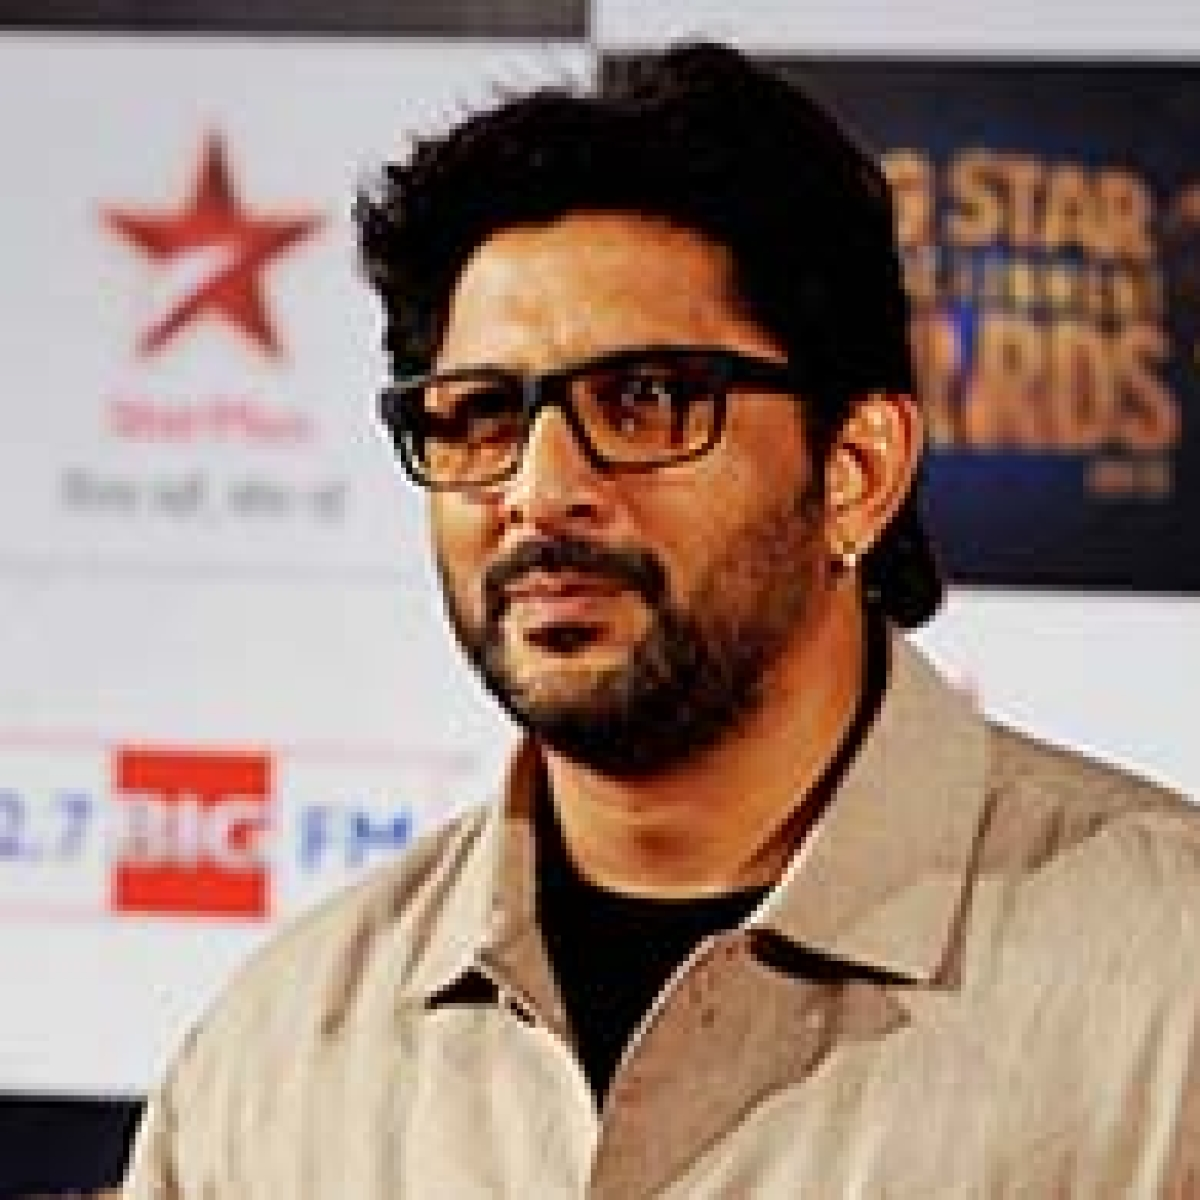 Adani Electricity slams Arshad Warsi for 'selectively targetting' company, calls his tweet on power bills 'derogatory'